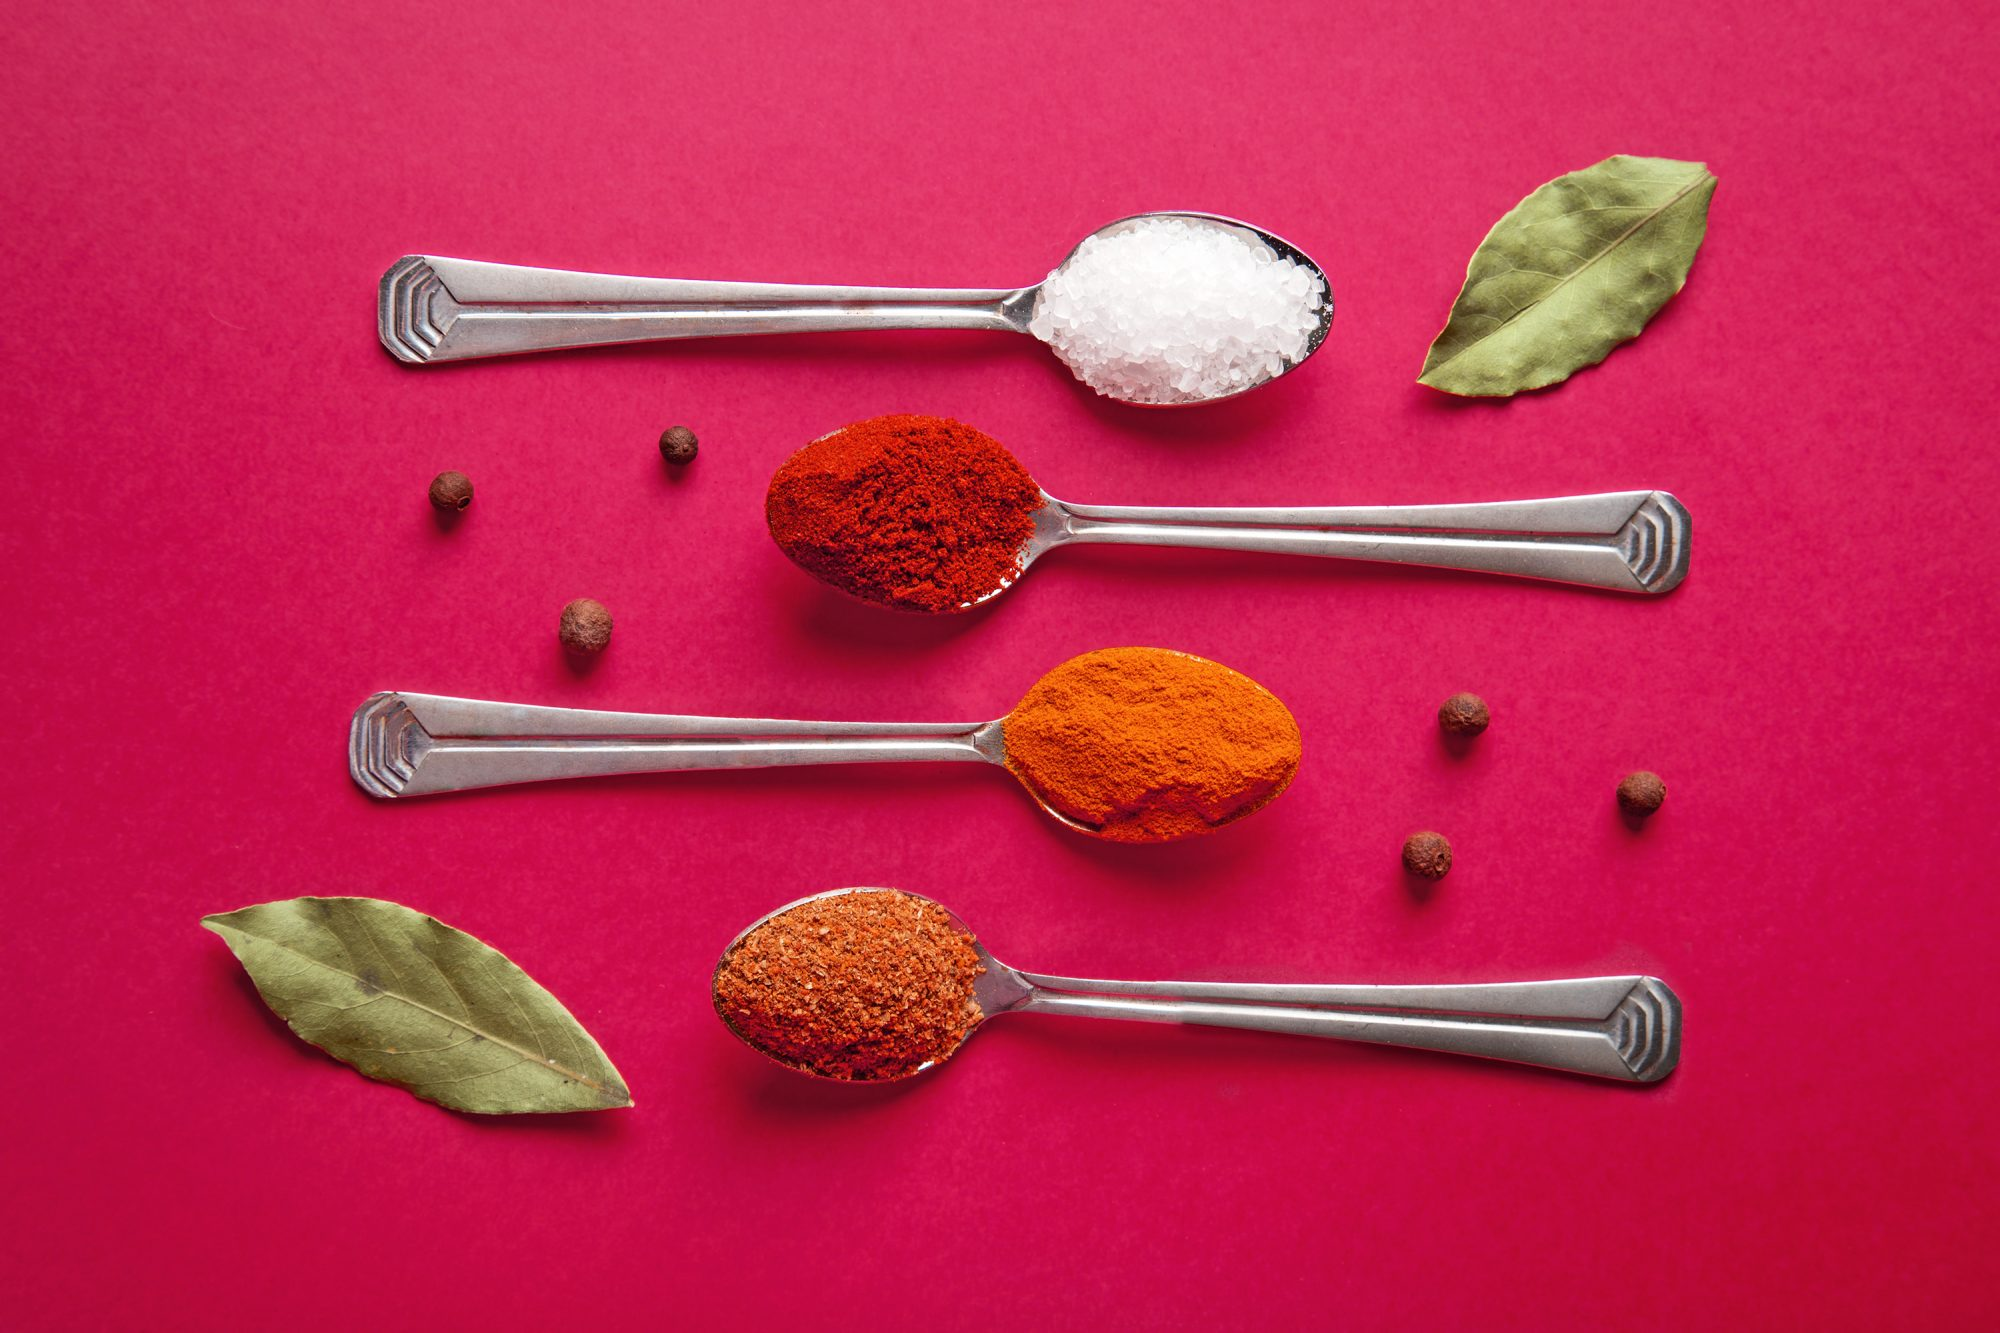 spices-you-need: assorted spices on spoons